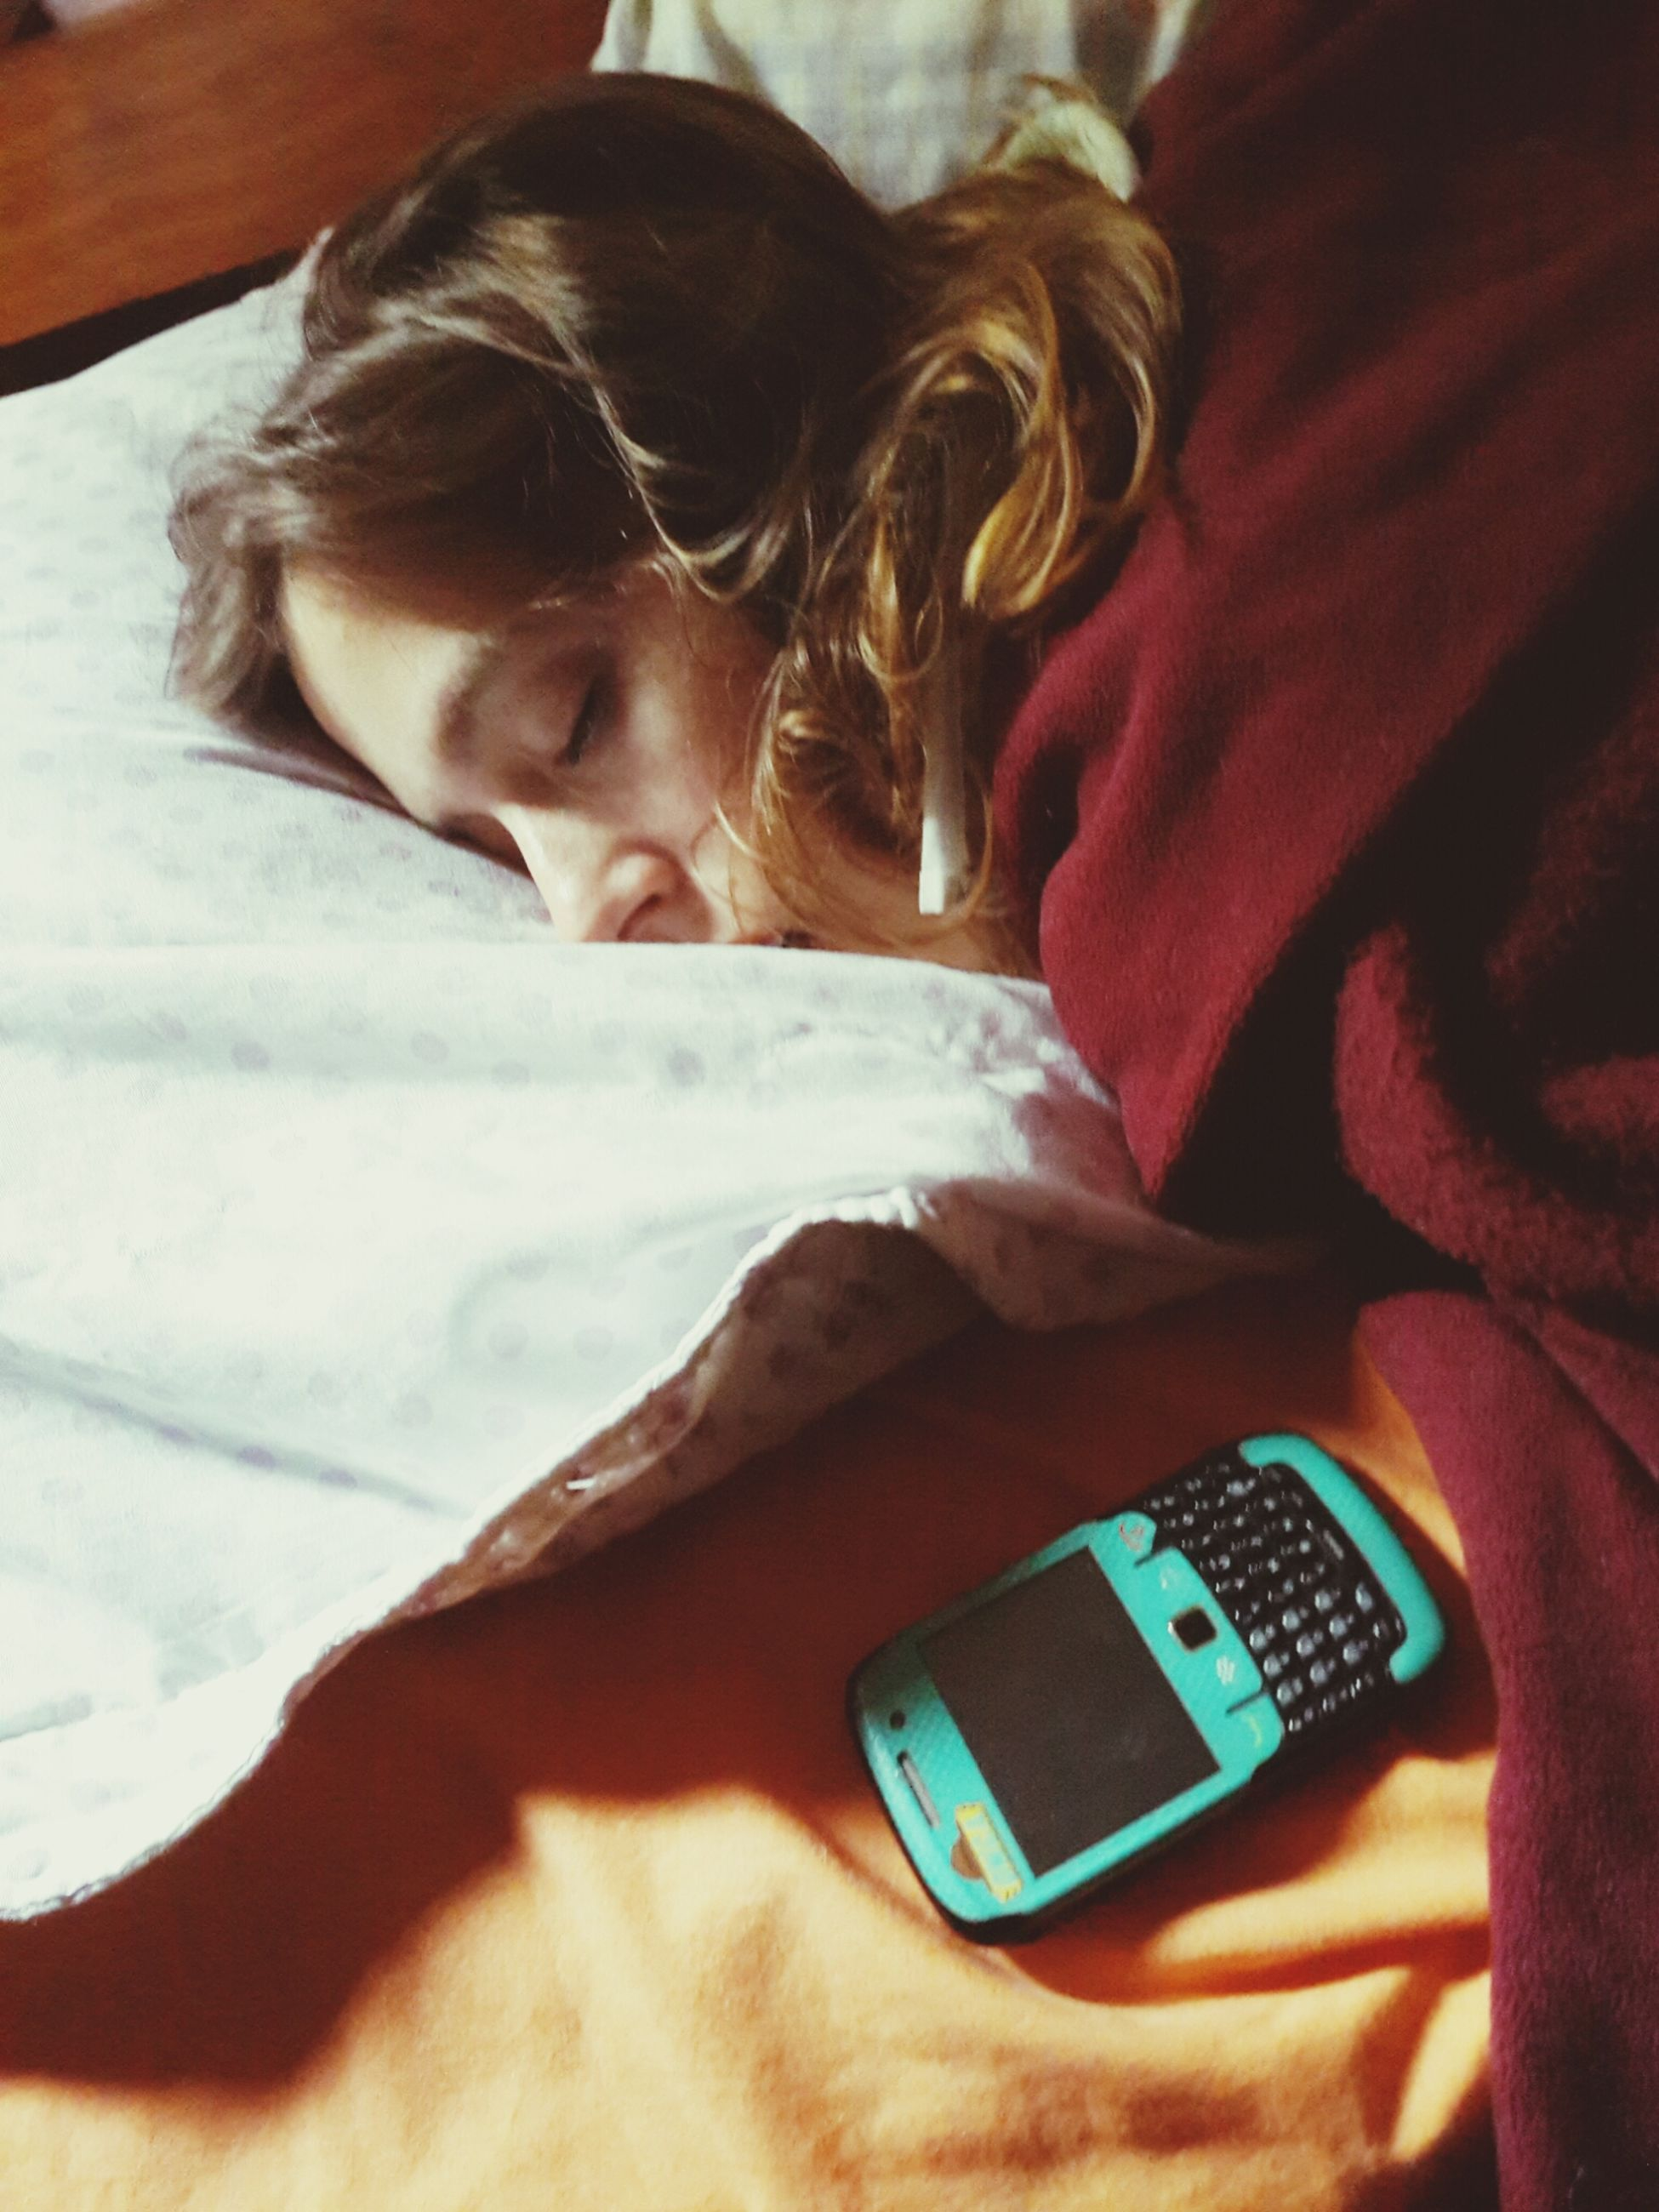 indoors, lifestyles, leisure activity, person, wireless technology, technology, casual clothing, high angle view, home interior, headshot, close-up, communication, holding, connection, bed, relaxation, young adult, mobile phone